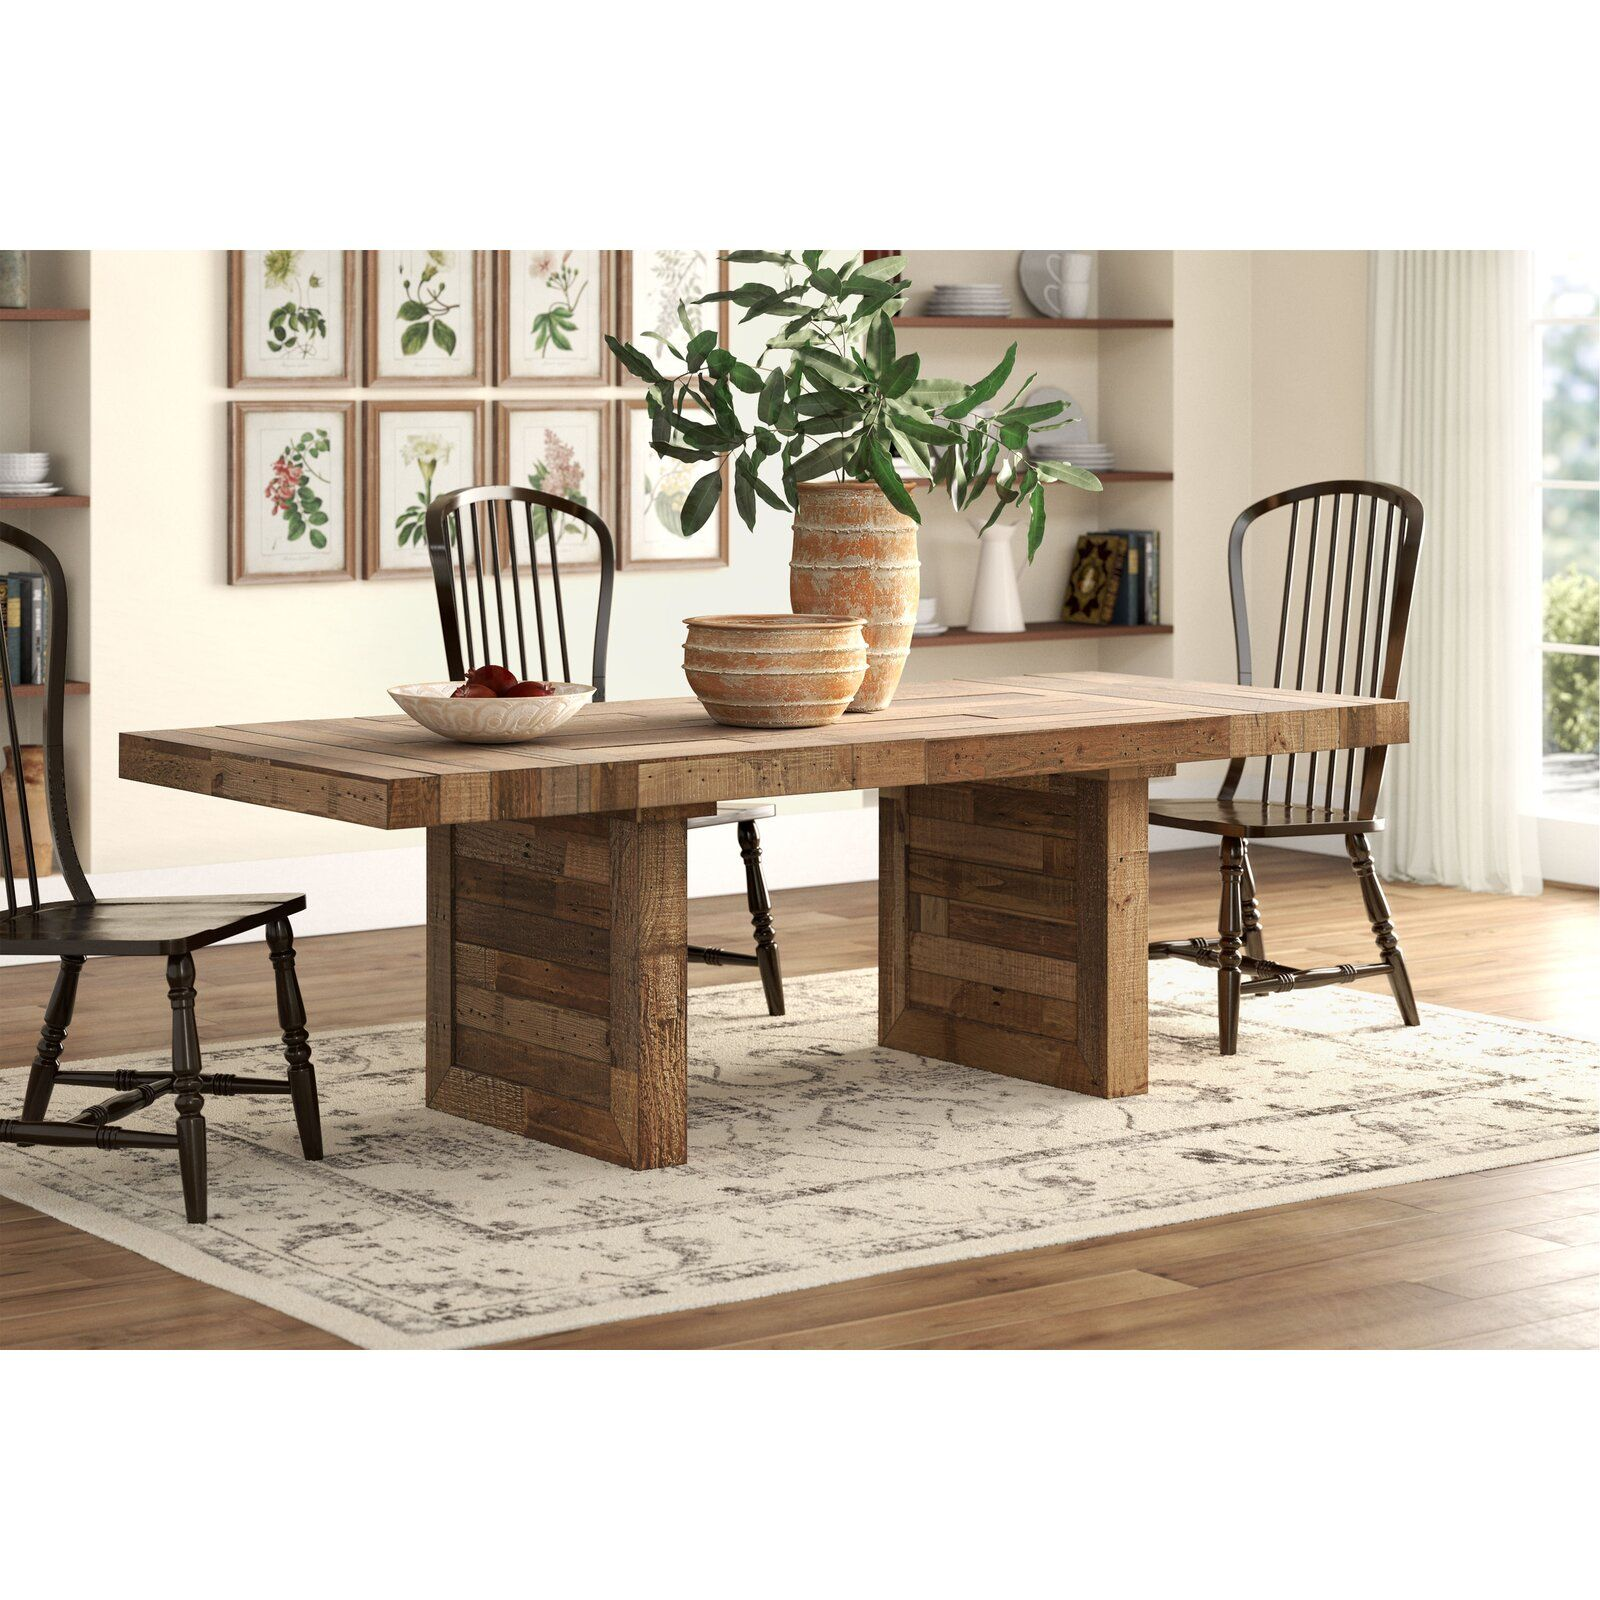 Pin By Courtney Miguel On Dining Room In 2021 Solid Wood Dining Table Wood Dining Table Dining Table